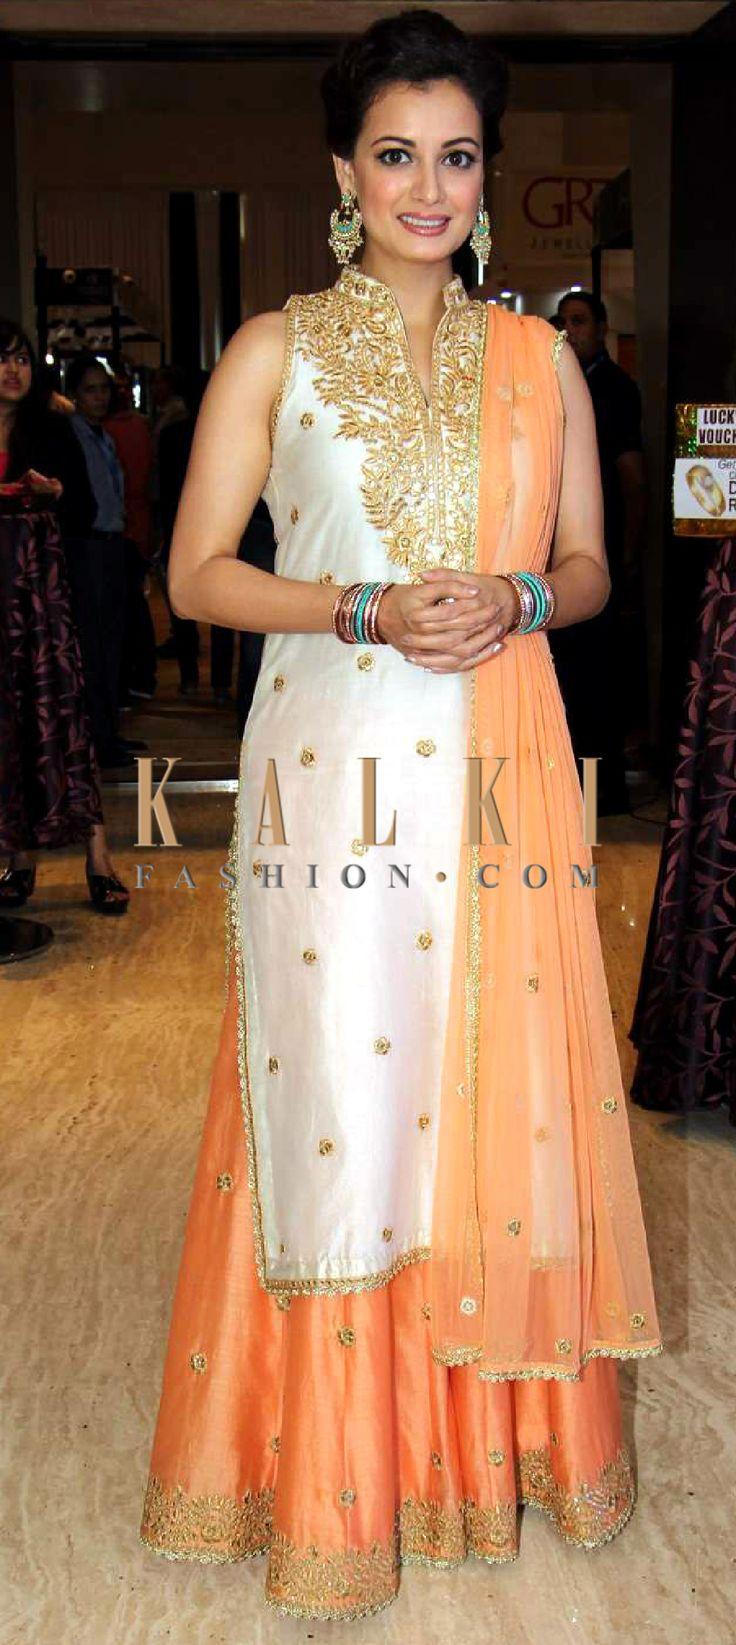 Match your favorite B-town celeb. Find a celeb style match on - http://www.kalkifashion.com/salwar-kameez/anarkali-salwar-kameez.html